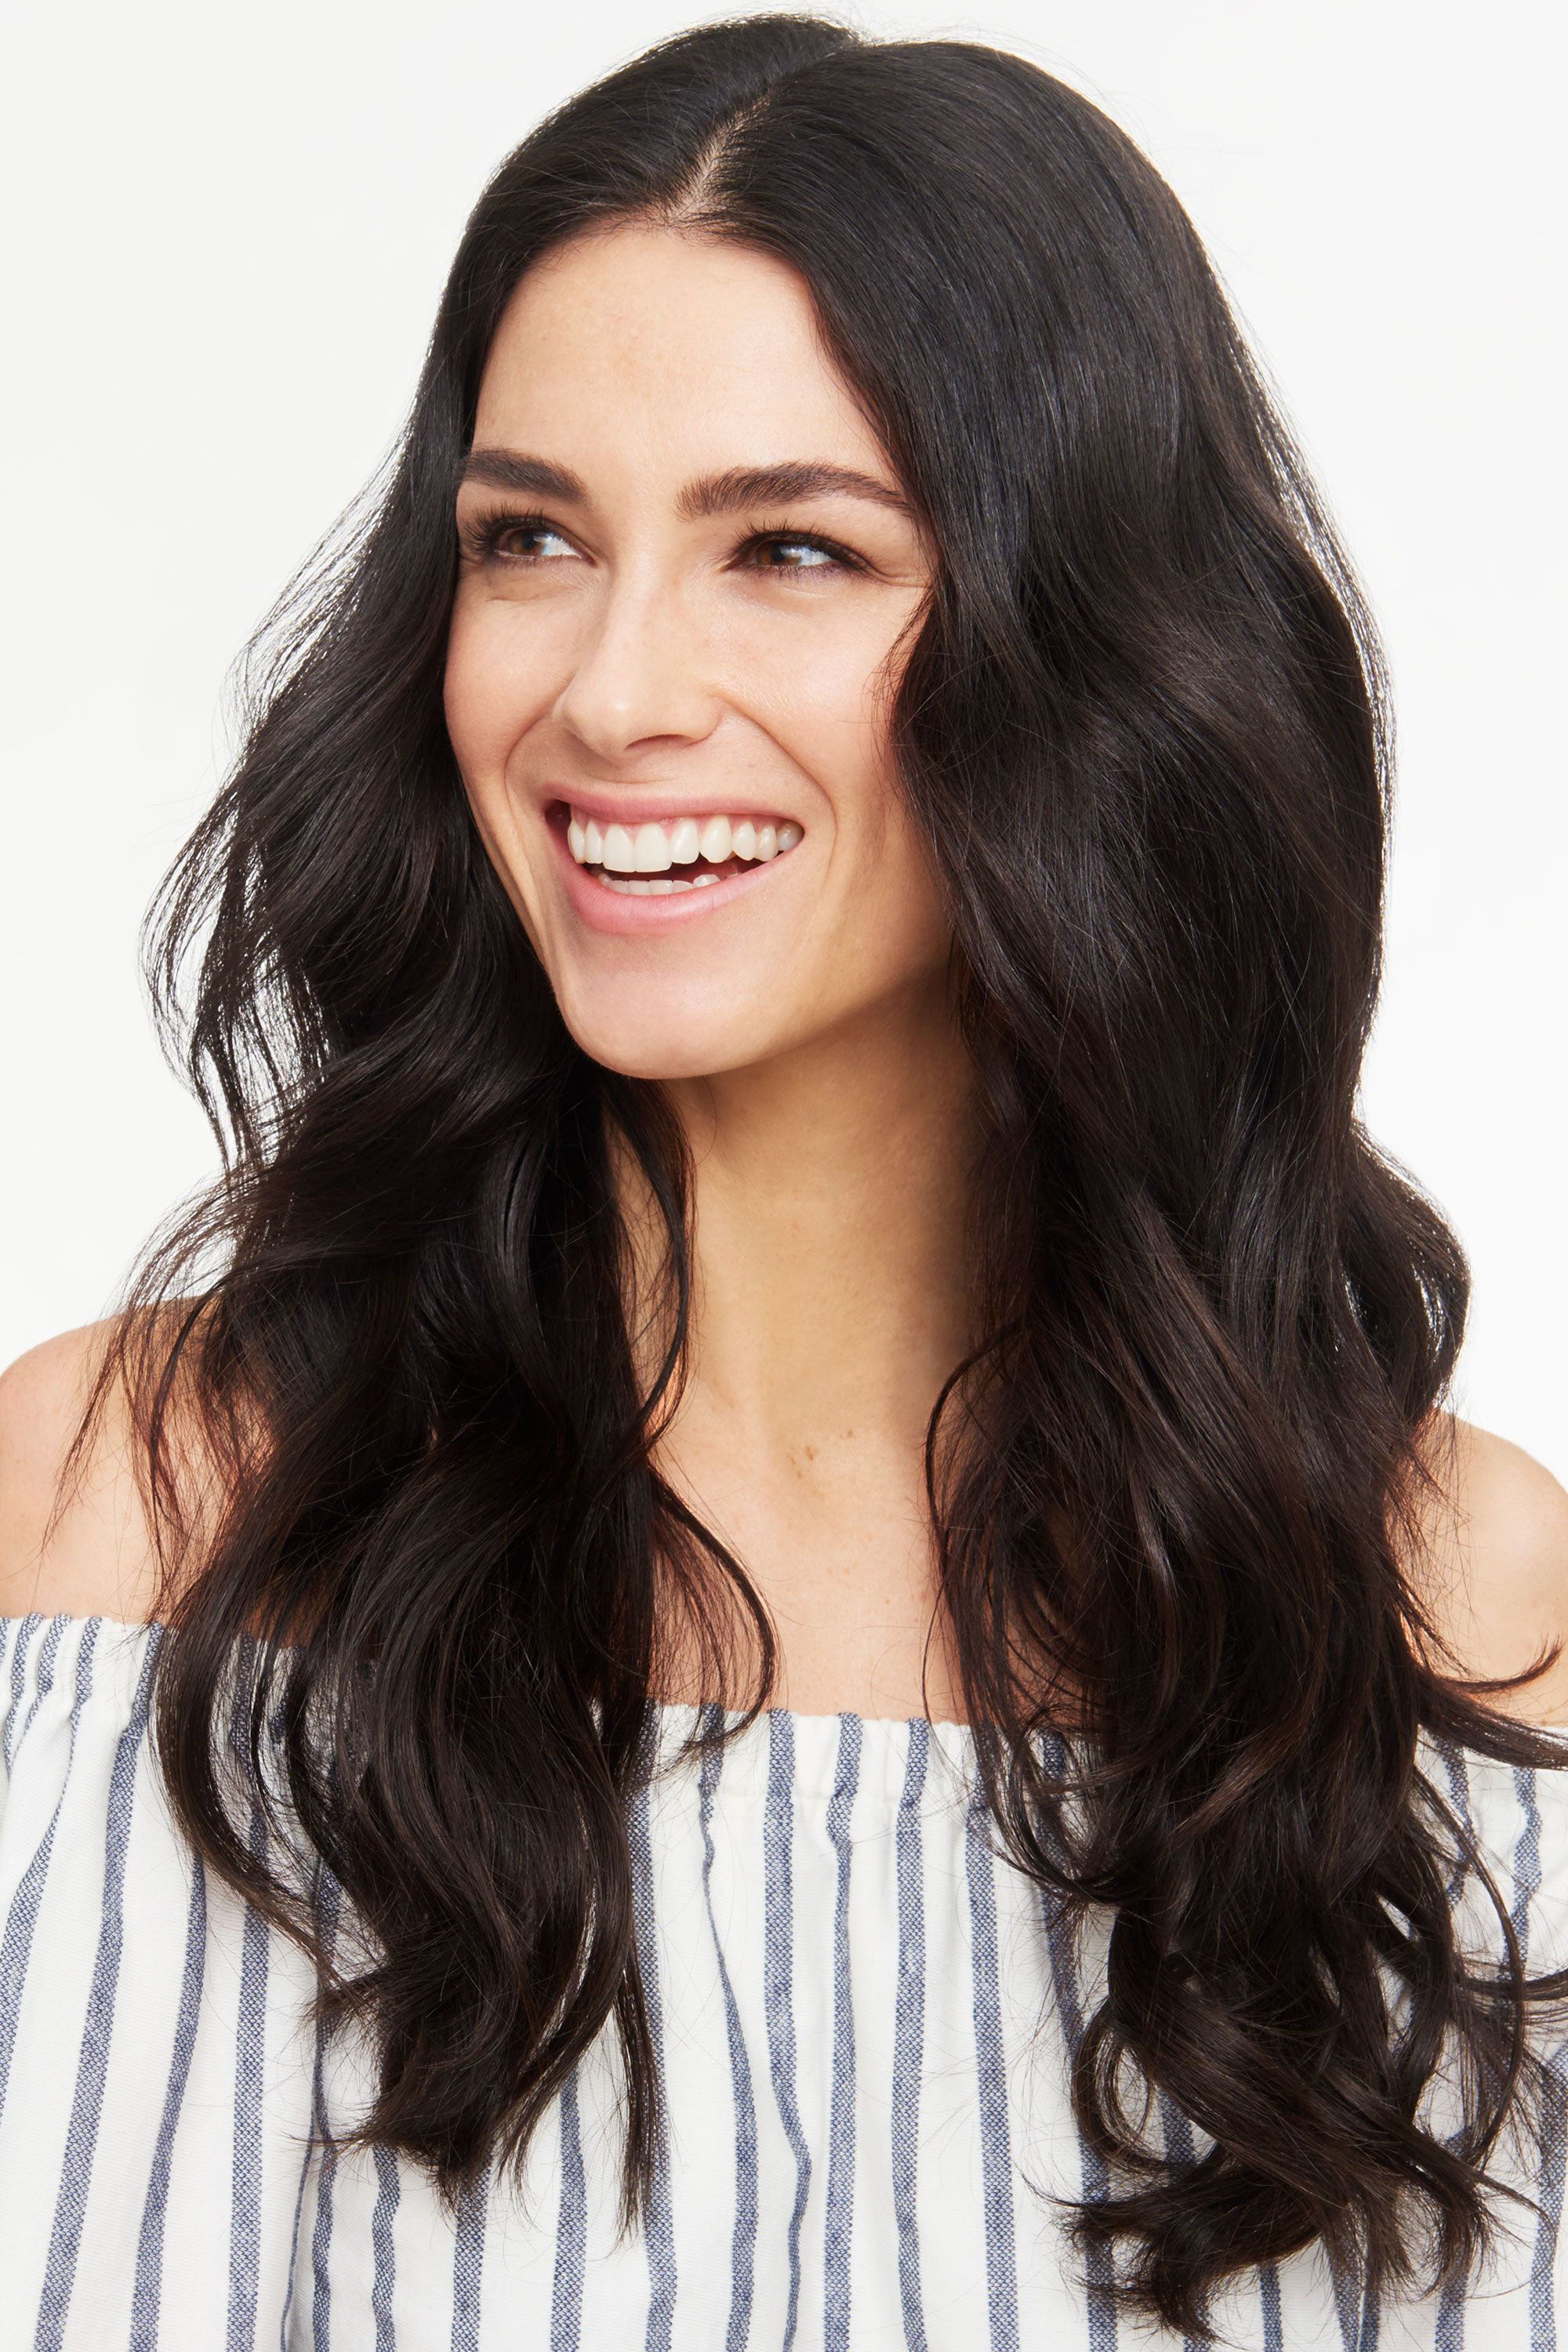 "<p>For a polished and relaxed style, do a blowout, then wrap one-inch sections of your hair around a curling wand, making sure not to overlap your strands. After you release the hair, loosen it up with your fingers. For this much fullness, use a volumizing collection like <a href=""http://bit.ly/1XyoSPb"" target=""_blank"">Suave Sea Mineral Infusion Shampoo and Conditioner</a> before you blow-dry. </p>"